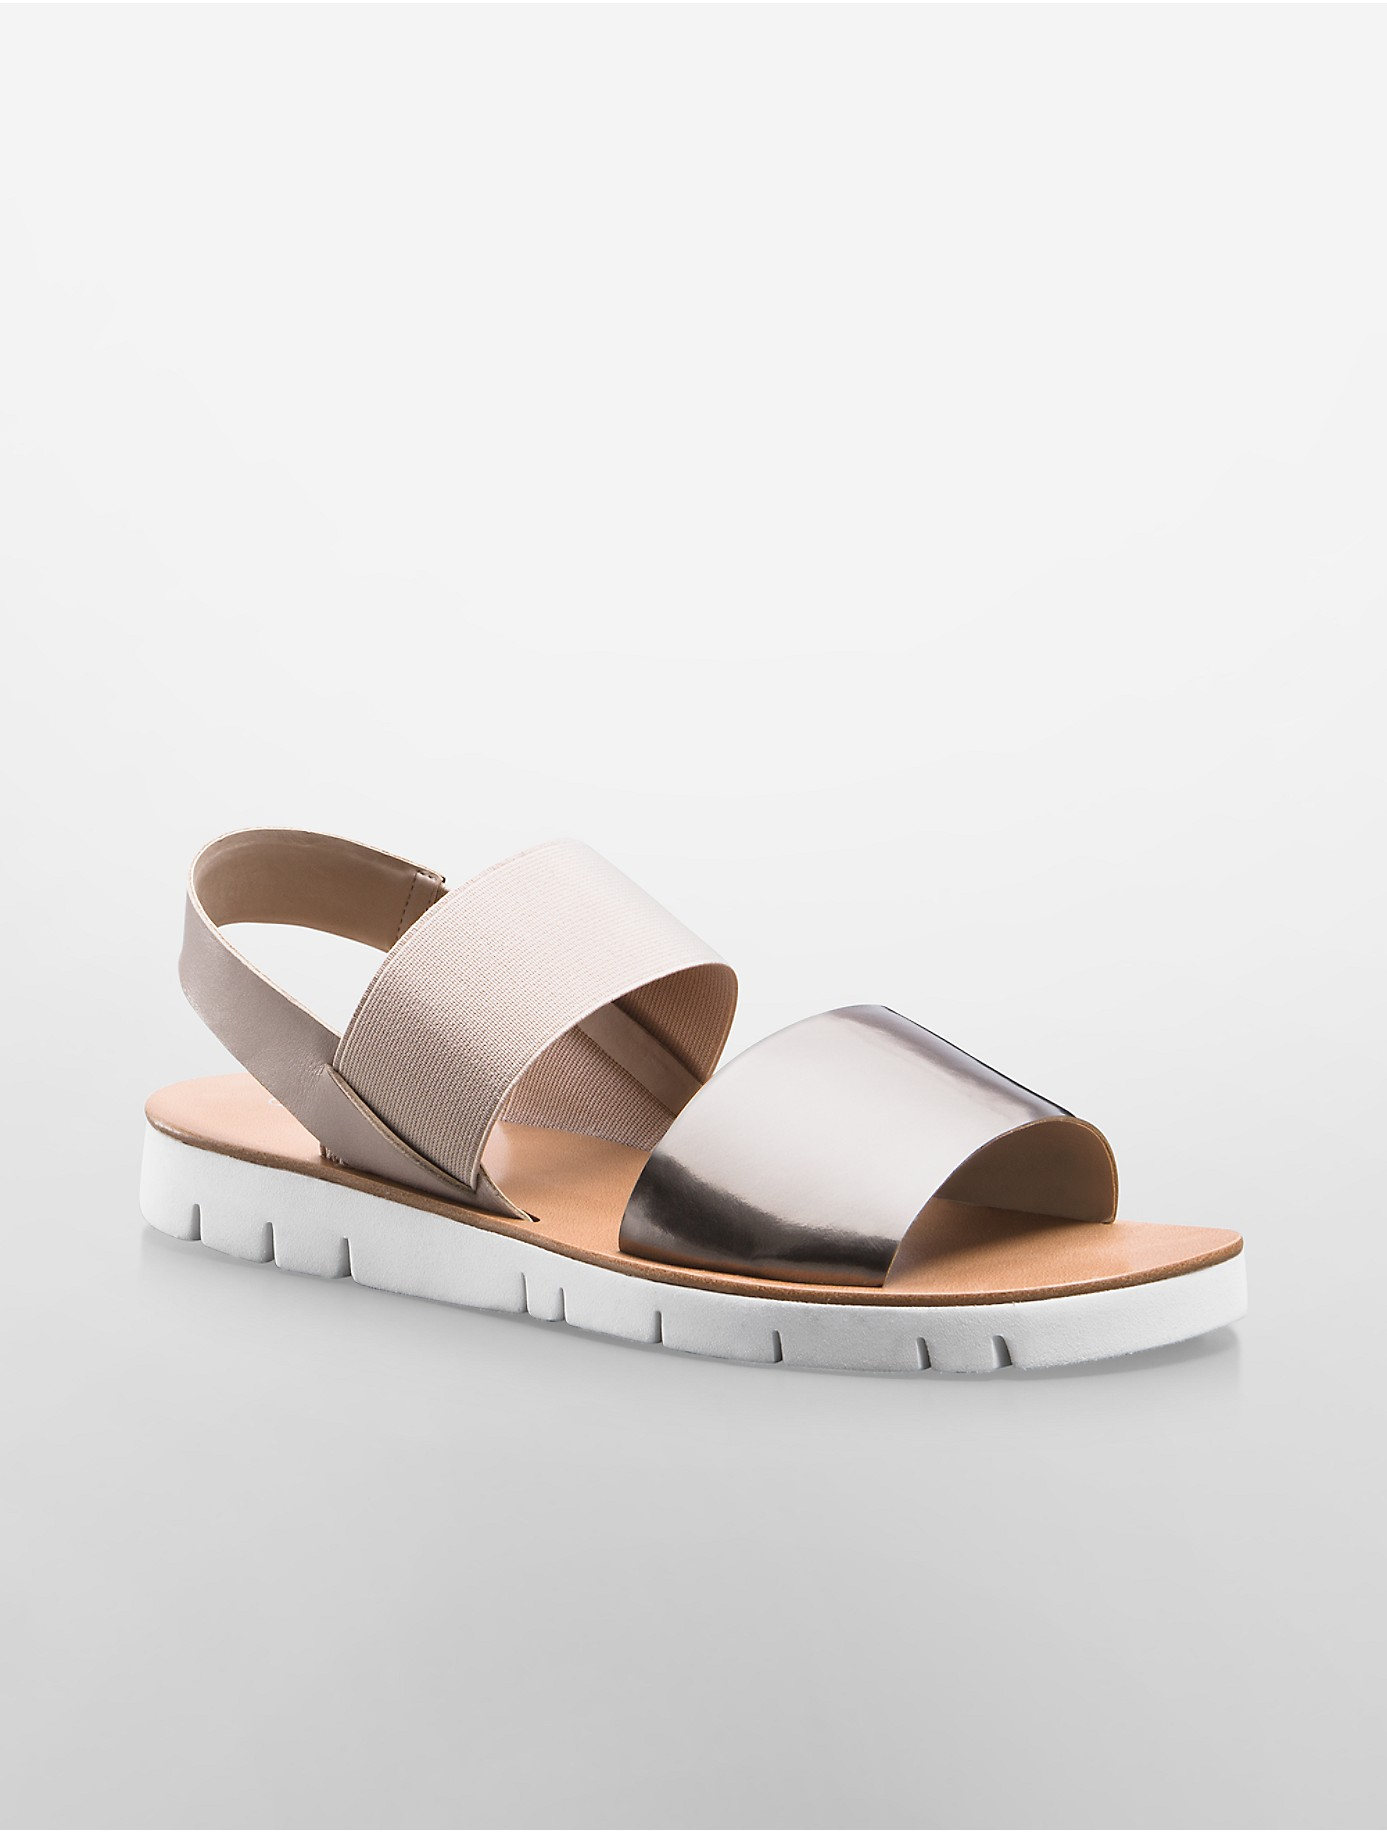 823fe724578 Lyst - Calvin Klein White Label Prisma Colorblock Metallic Flat ...